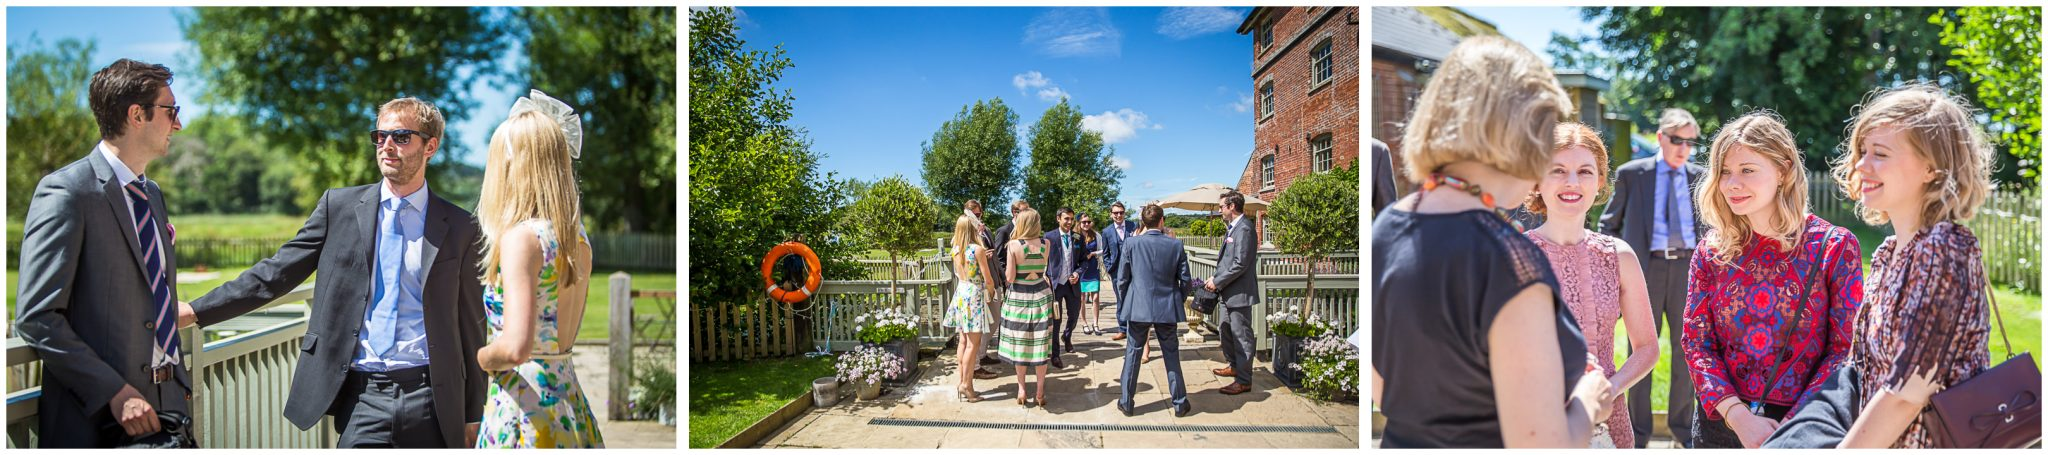 Sopley Mill Summer wedding guests arriving in sunshine